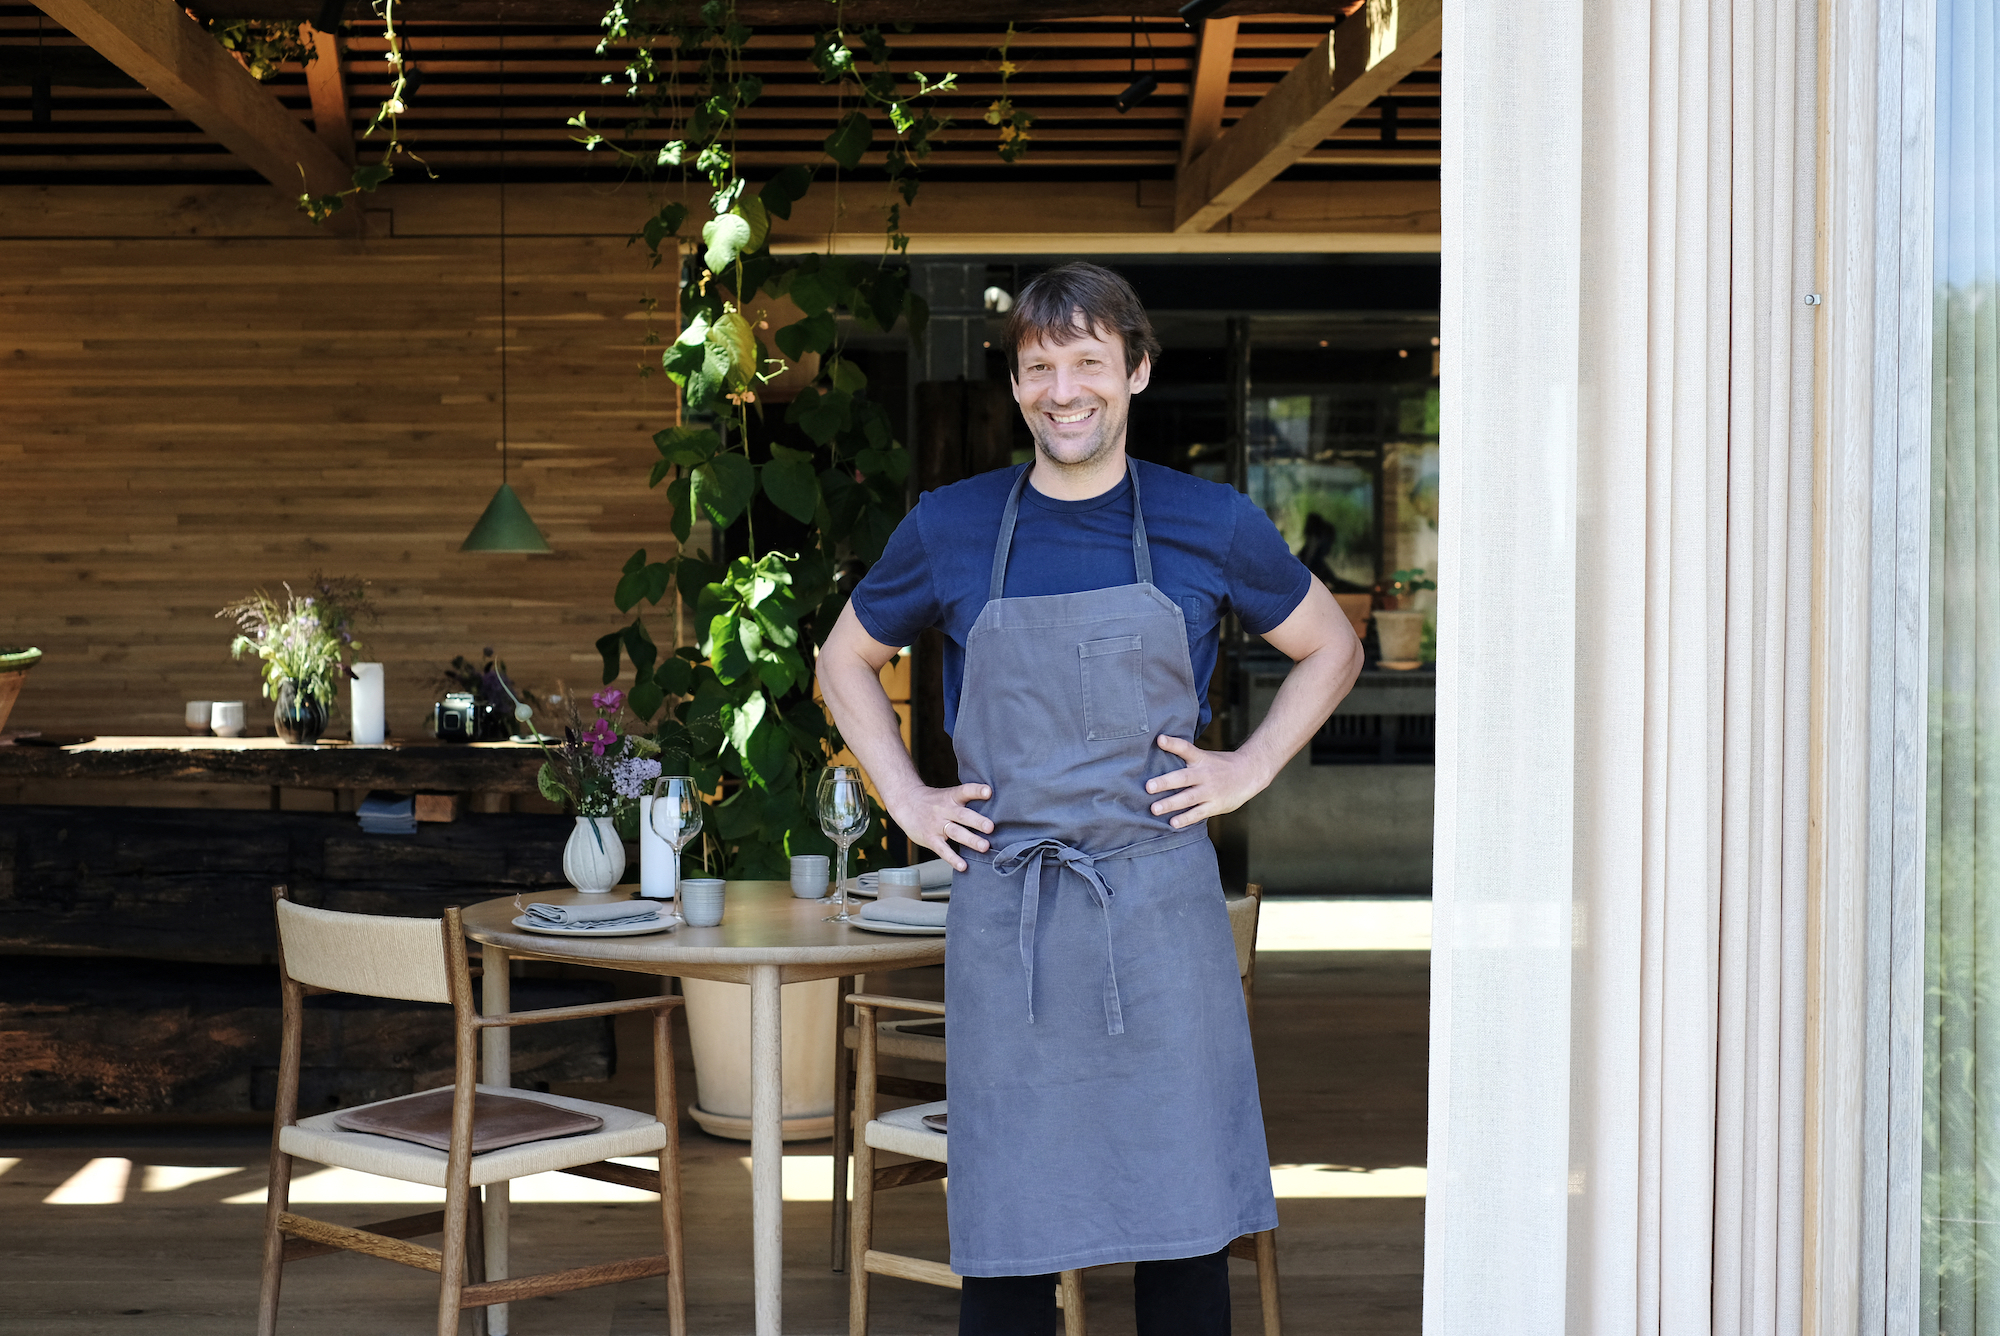 Rene Redzepi, chef and co-owner of the World class Danish restaurant Noma is pictured on May 31, 2021 in Copenhagen